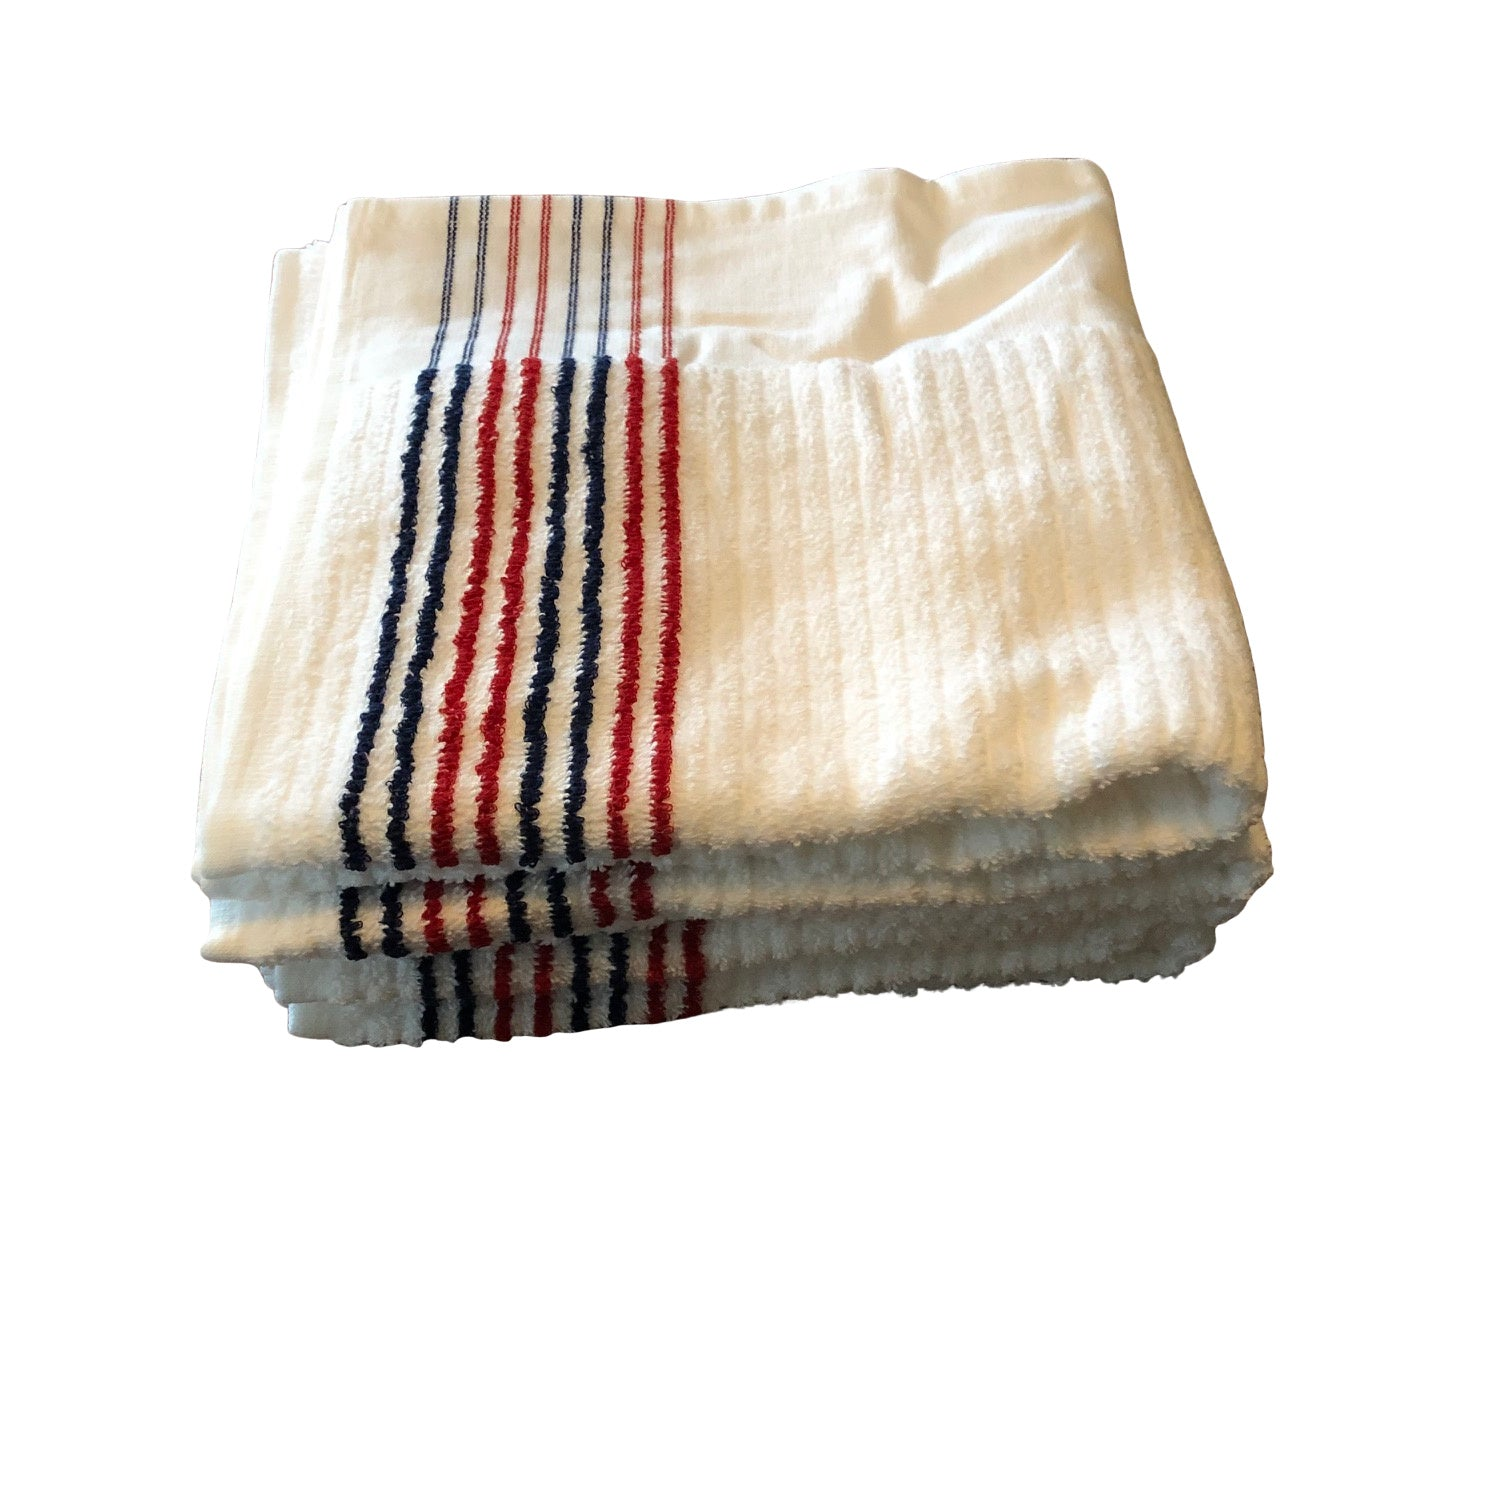 LOOPER TOWEL- RED, WHITE AND BLUE STRIPE - Fade Golf N' Stuff Workshop